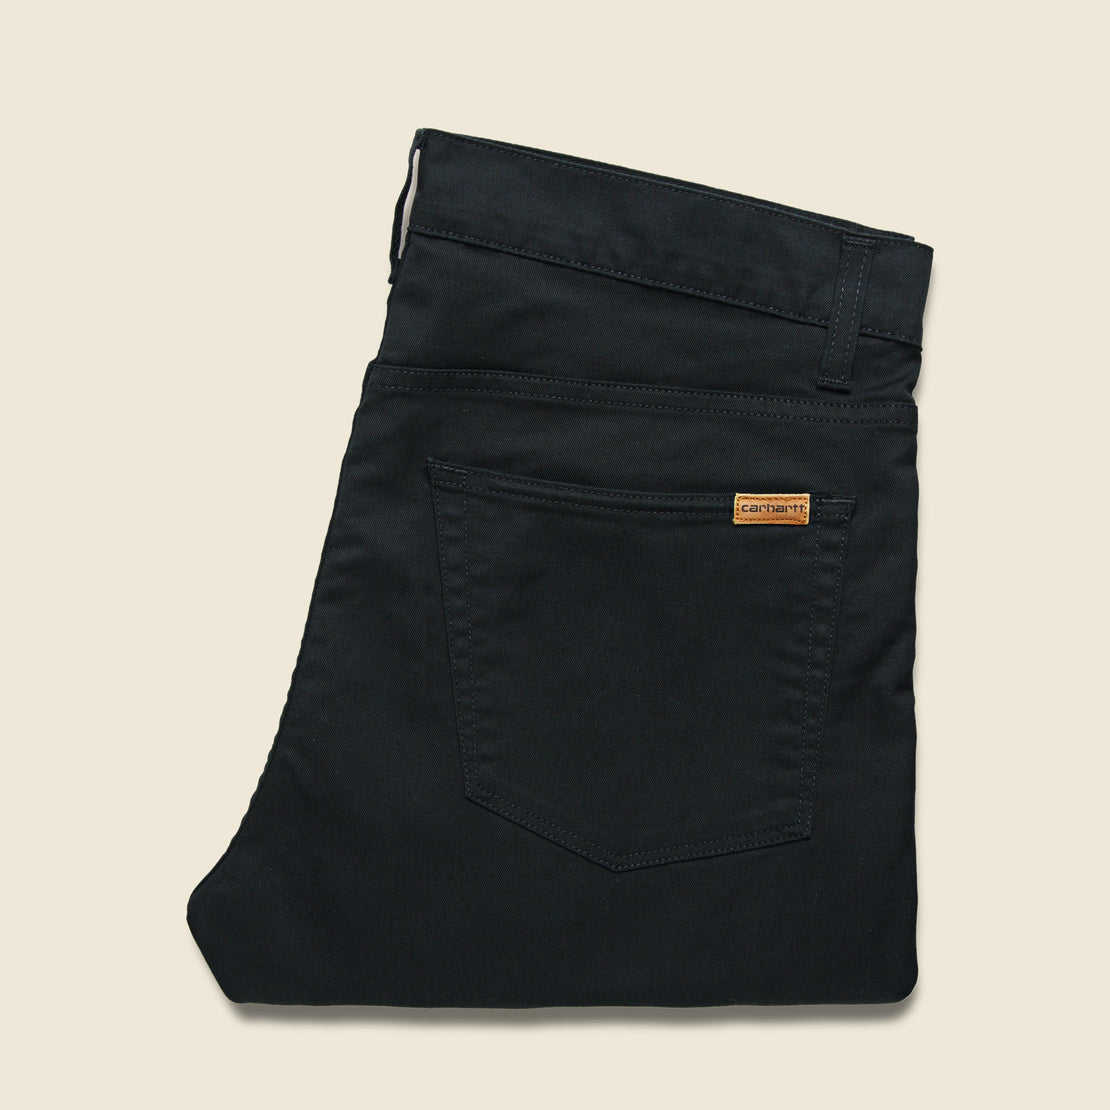 Vicious Pant - Black - Carhartt WIP - STAG Provisions - Pants - Twill